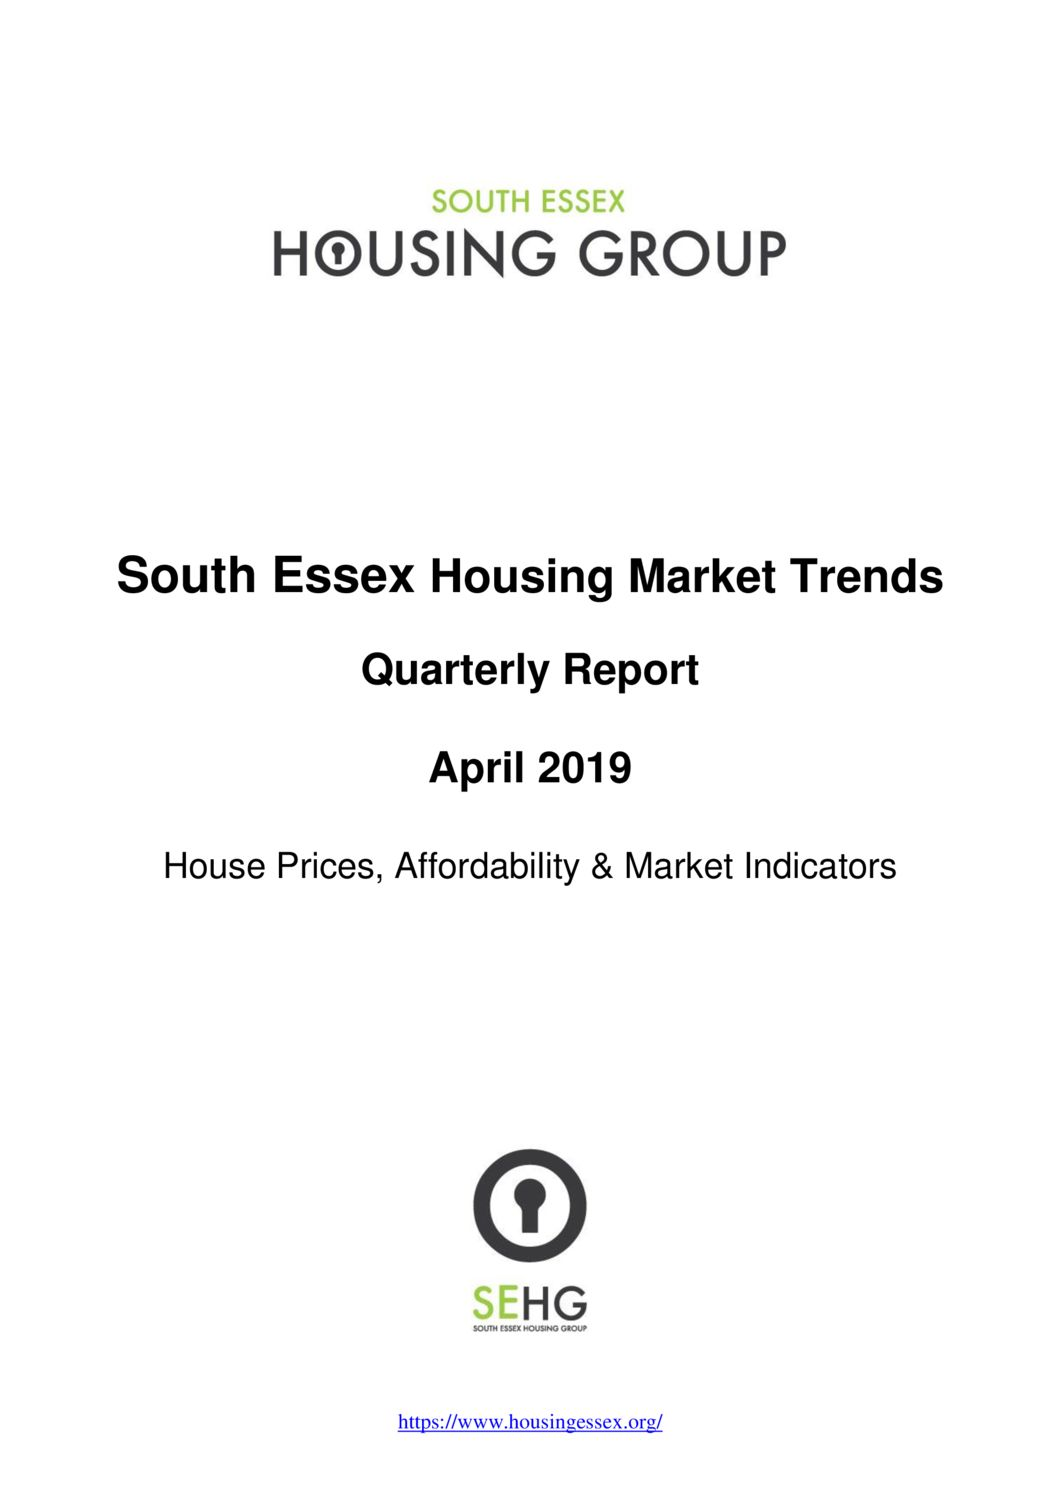 SE Housing Market Trends Quarterly Report April 2019